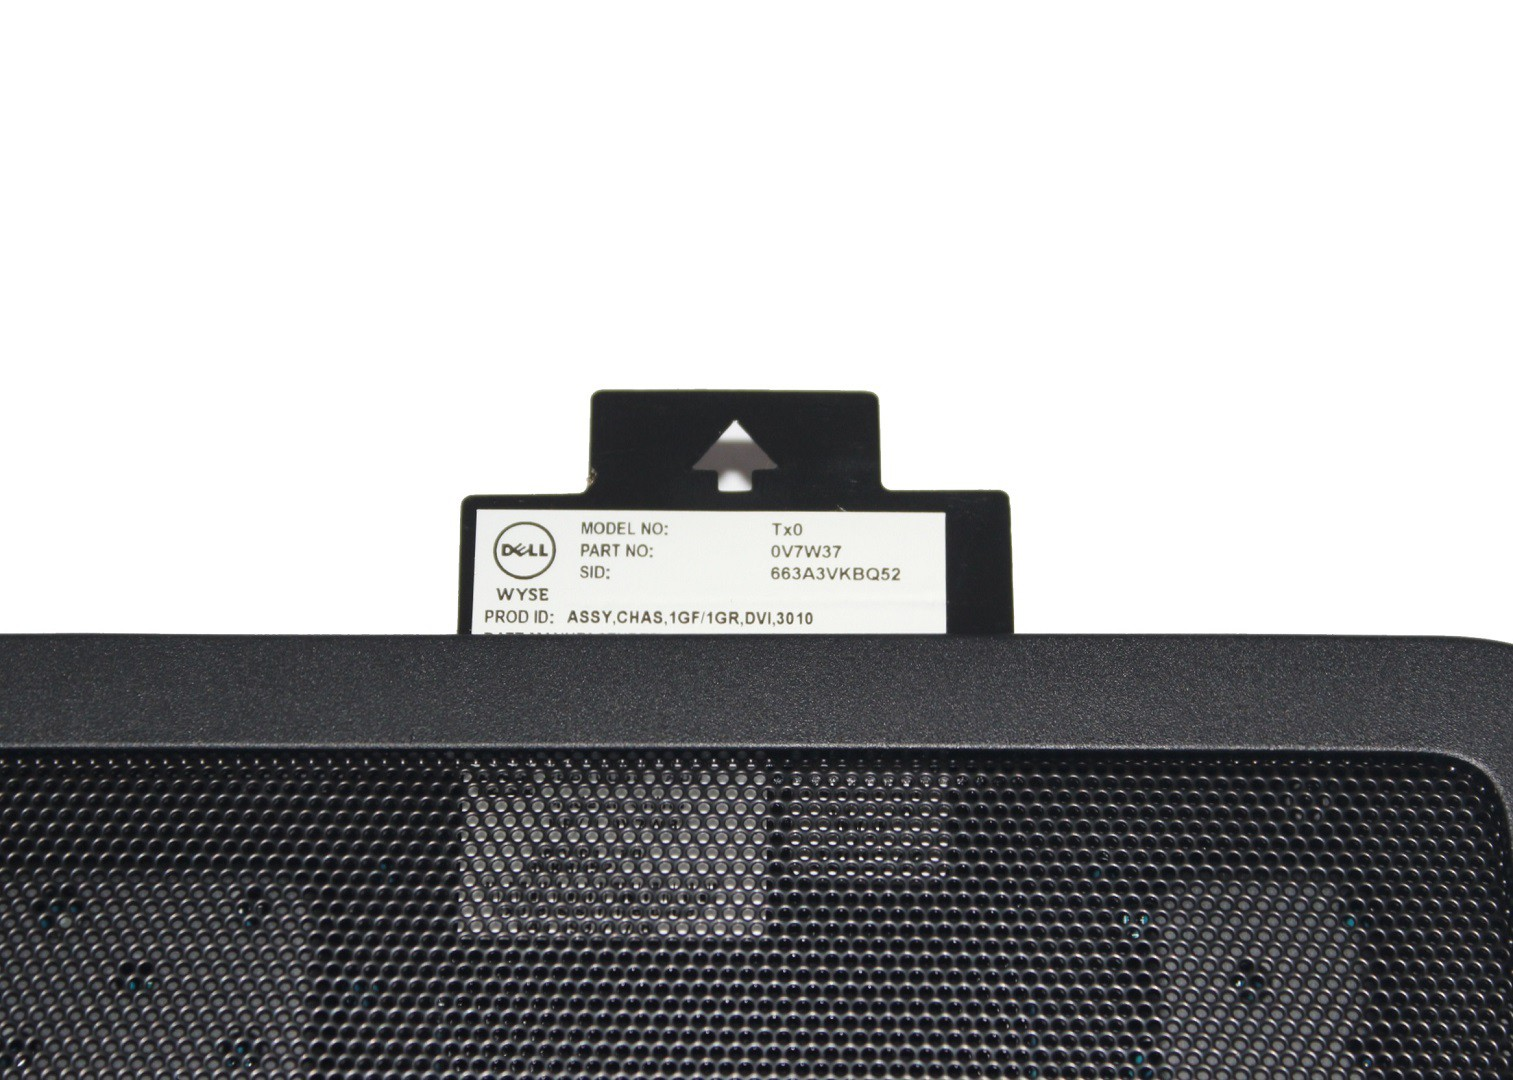 Dell Client Wyse 3010 Thin Client